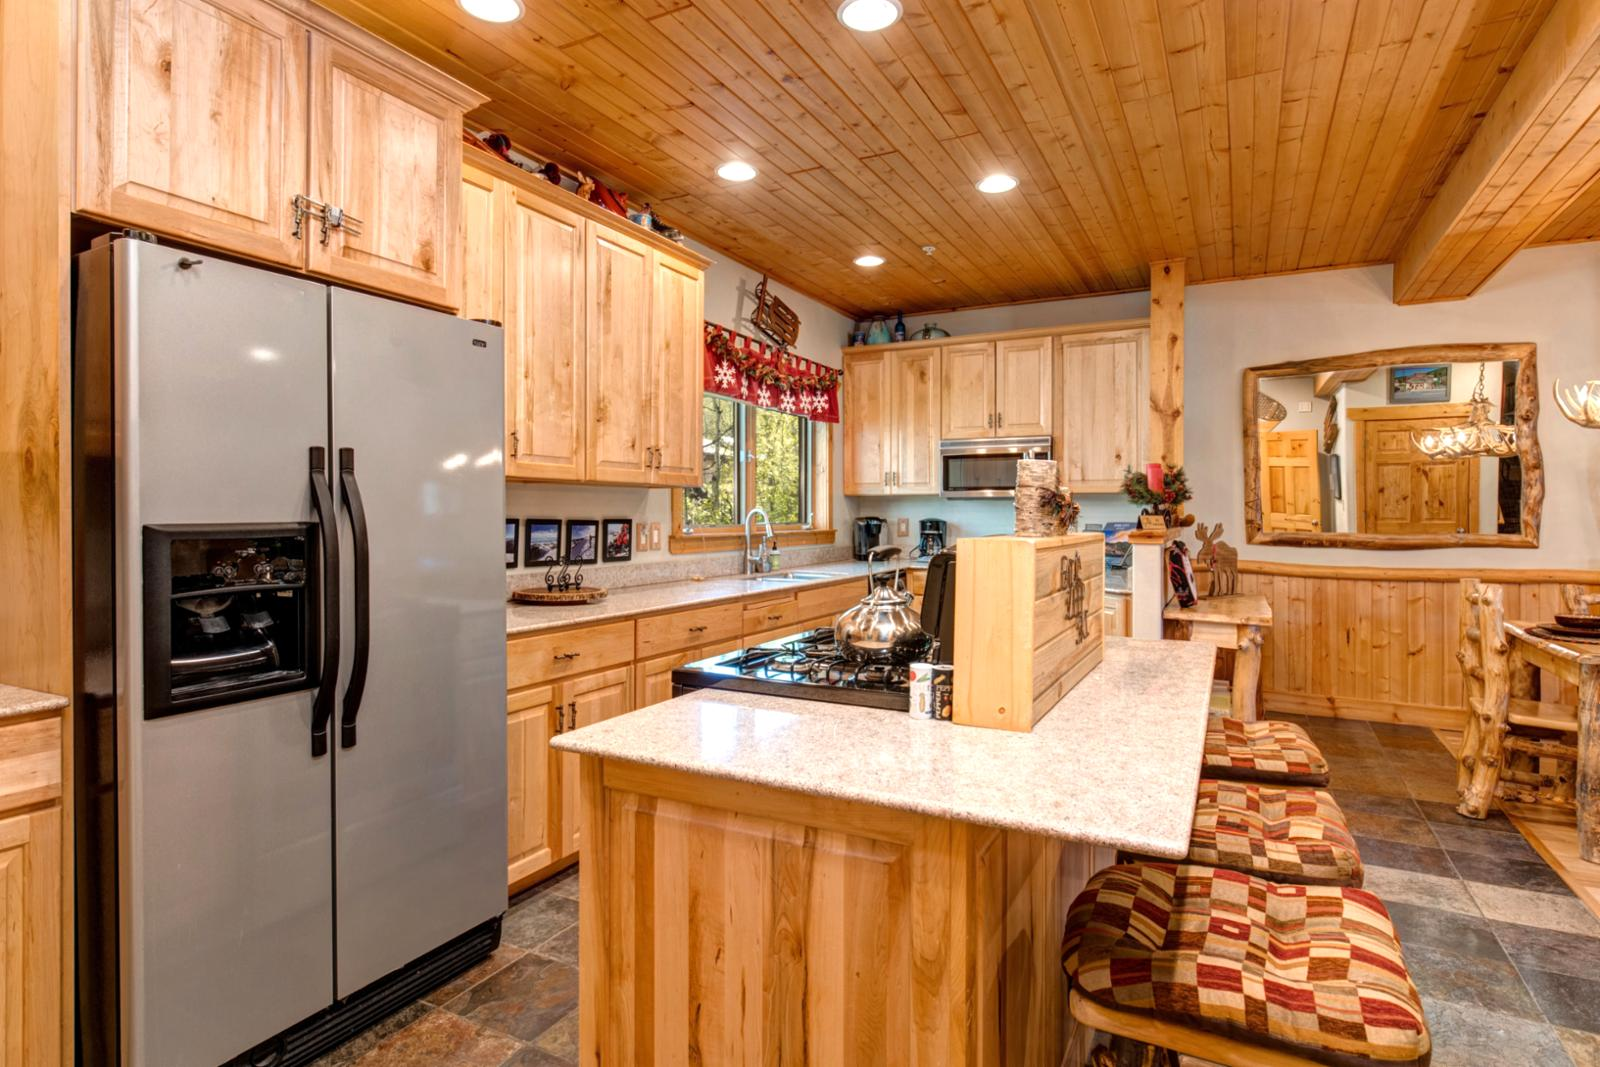 Stainless Steel appliances for a modern touch for your rustic cabin